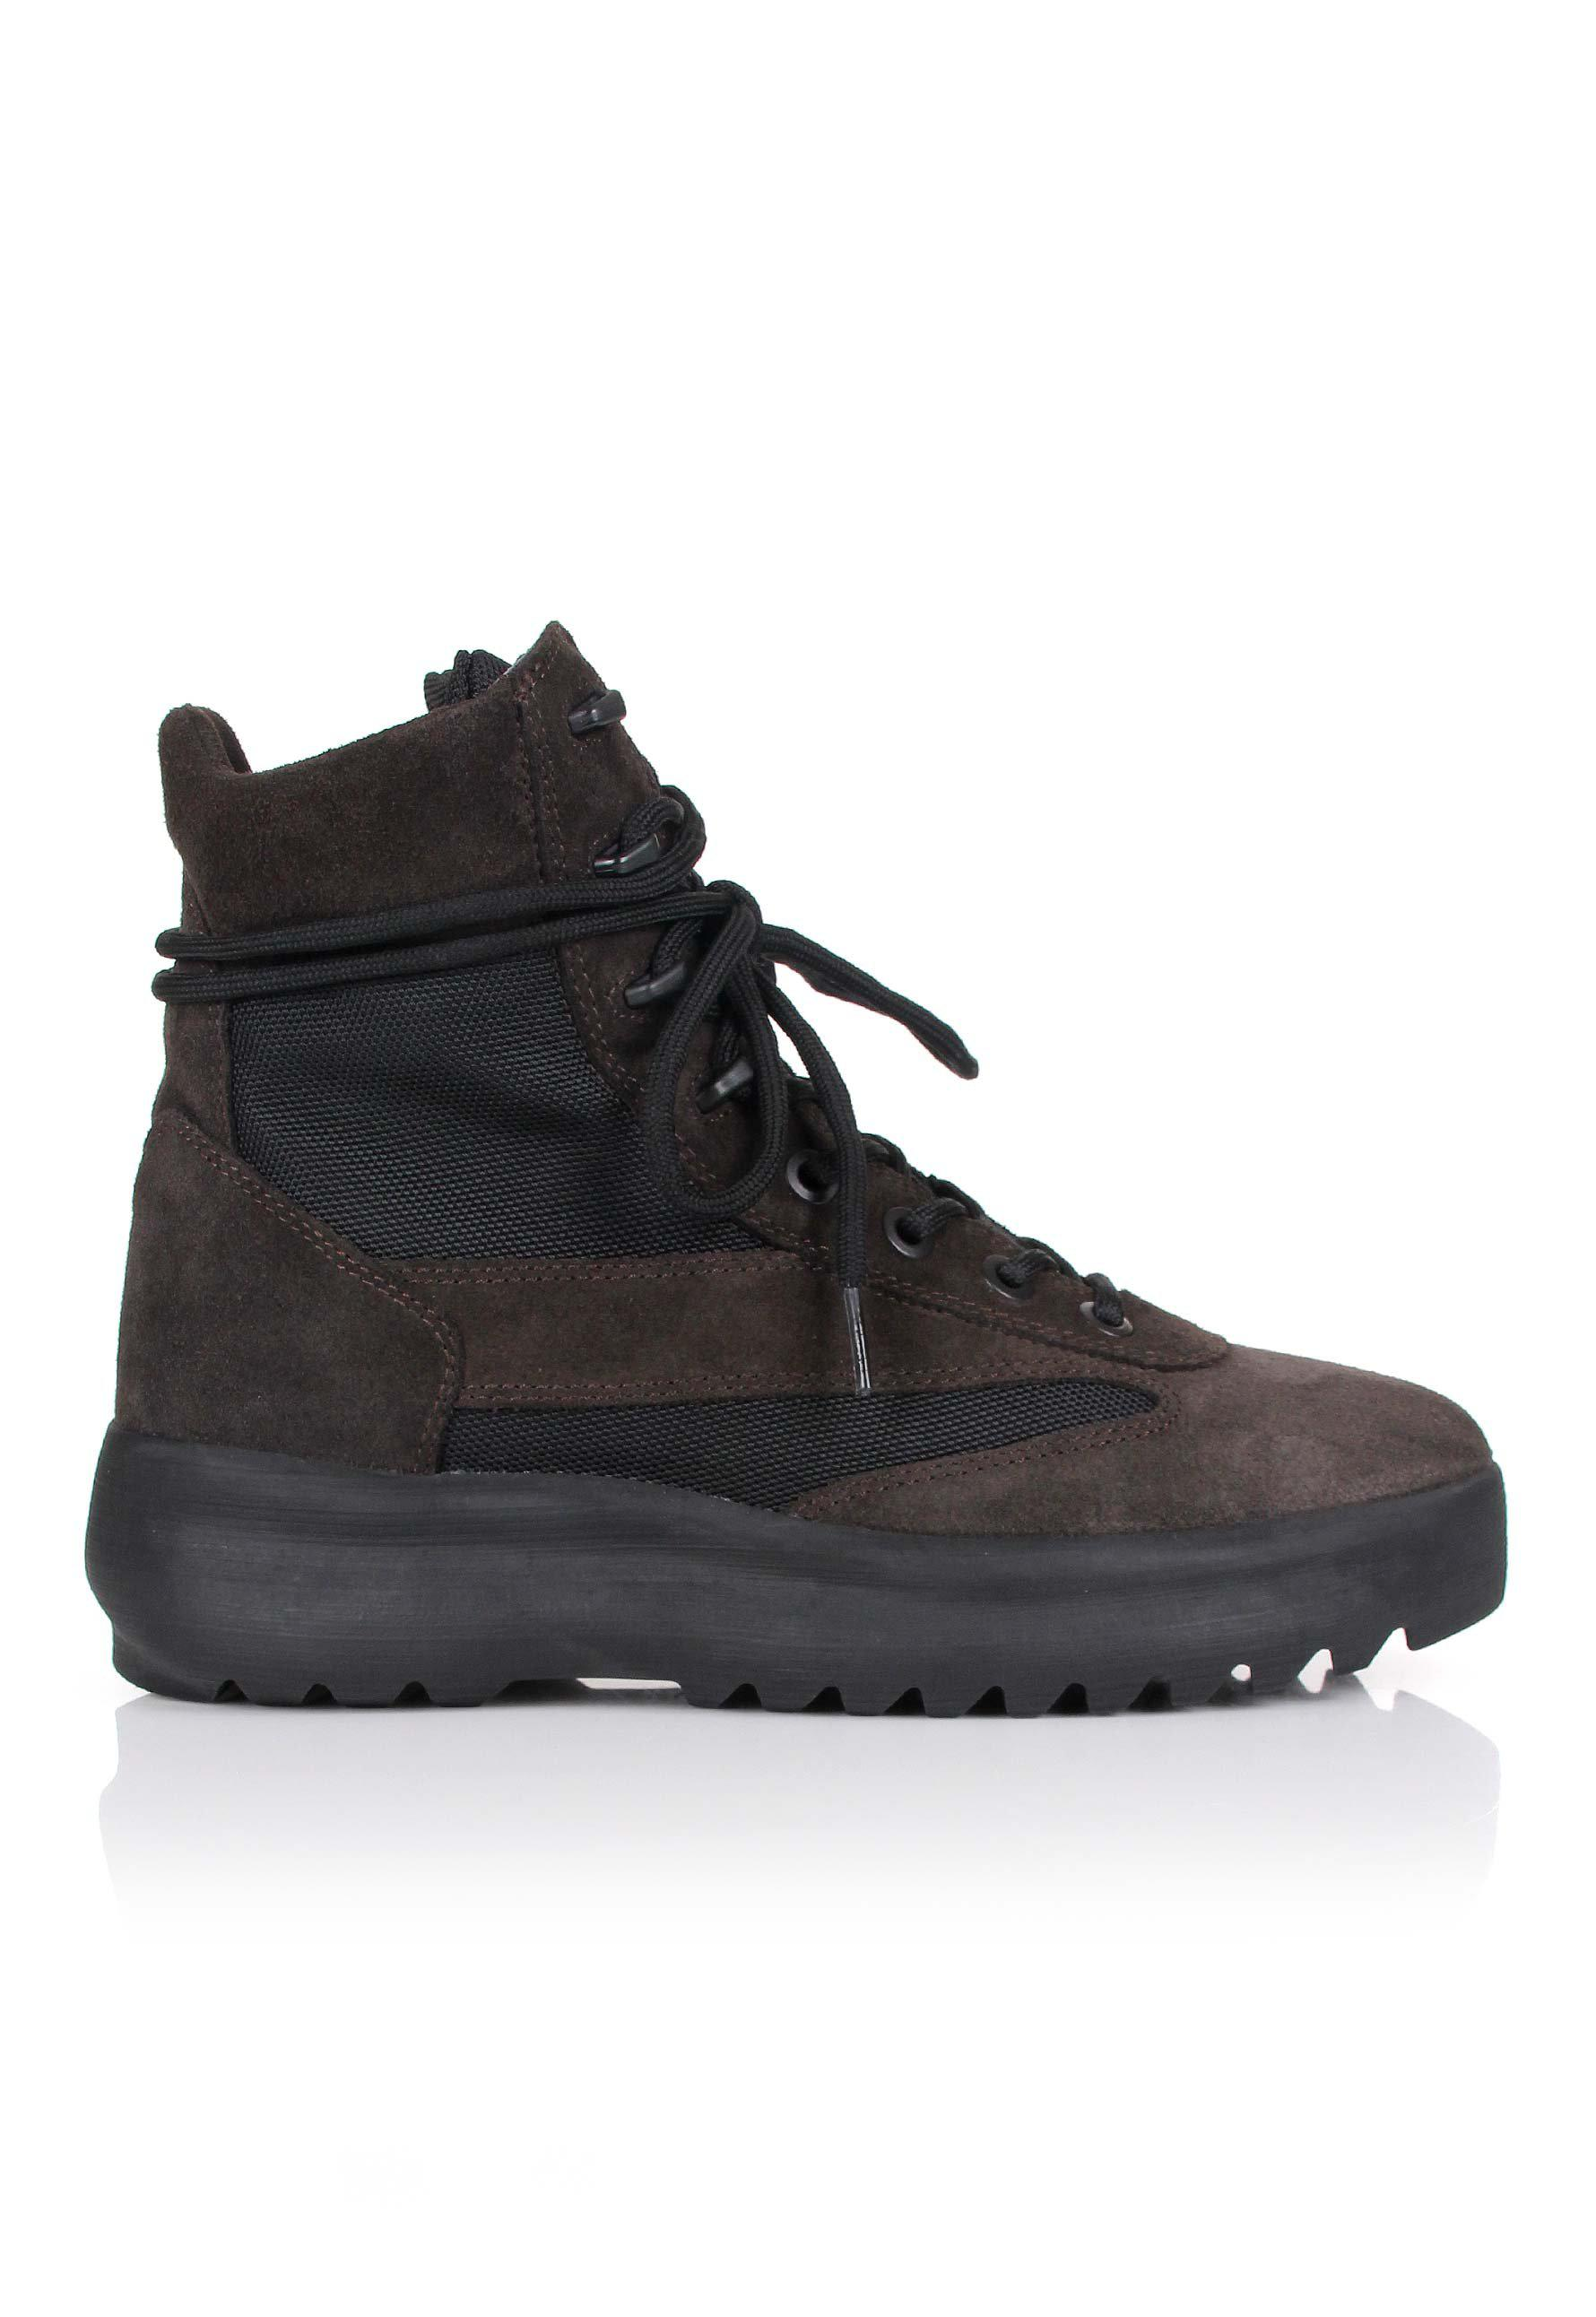 2079e3500517a Yeezy Season 5 Military Boots Oil in Black for Men - Lyst